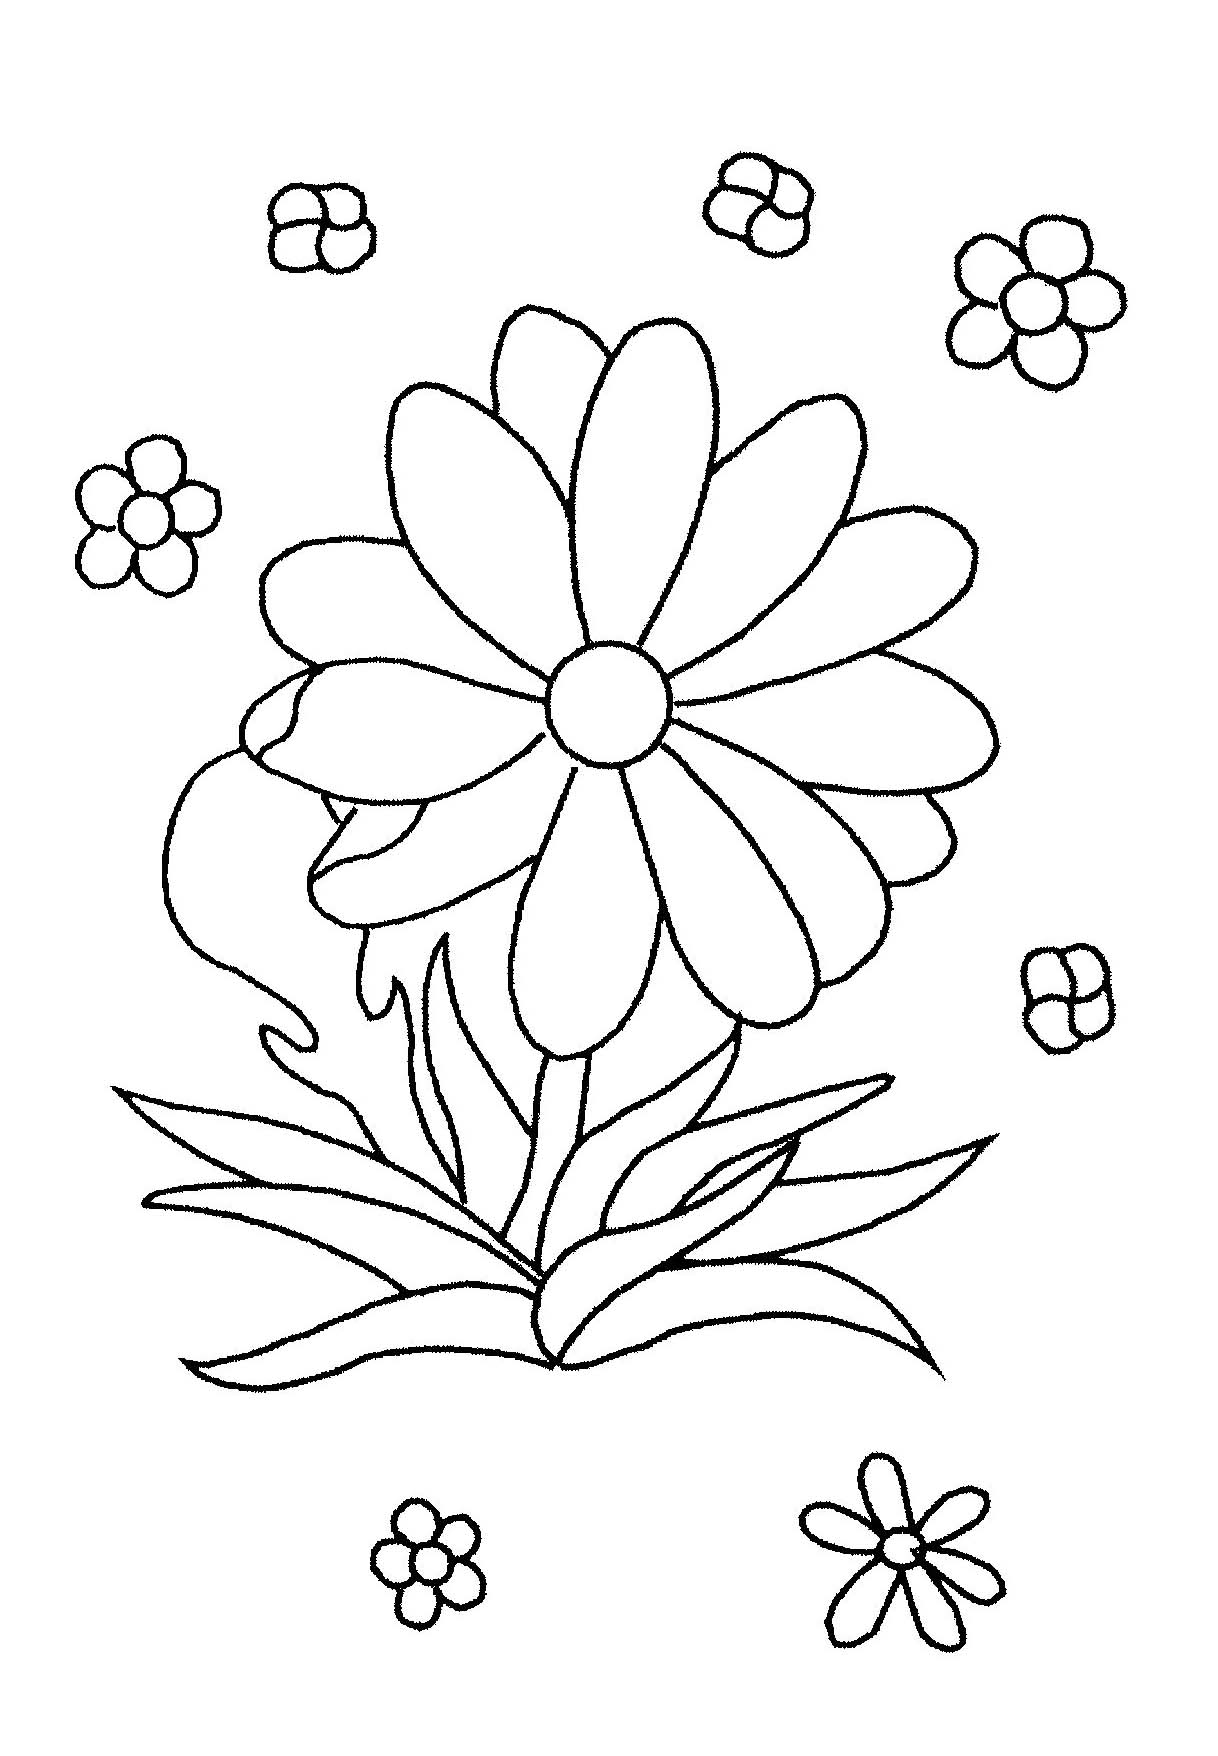 childrens coloring pages flowers print download some common variations of the flower childrens coloring flowers pages